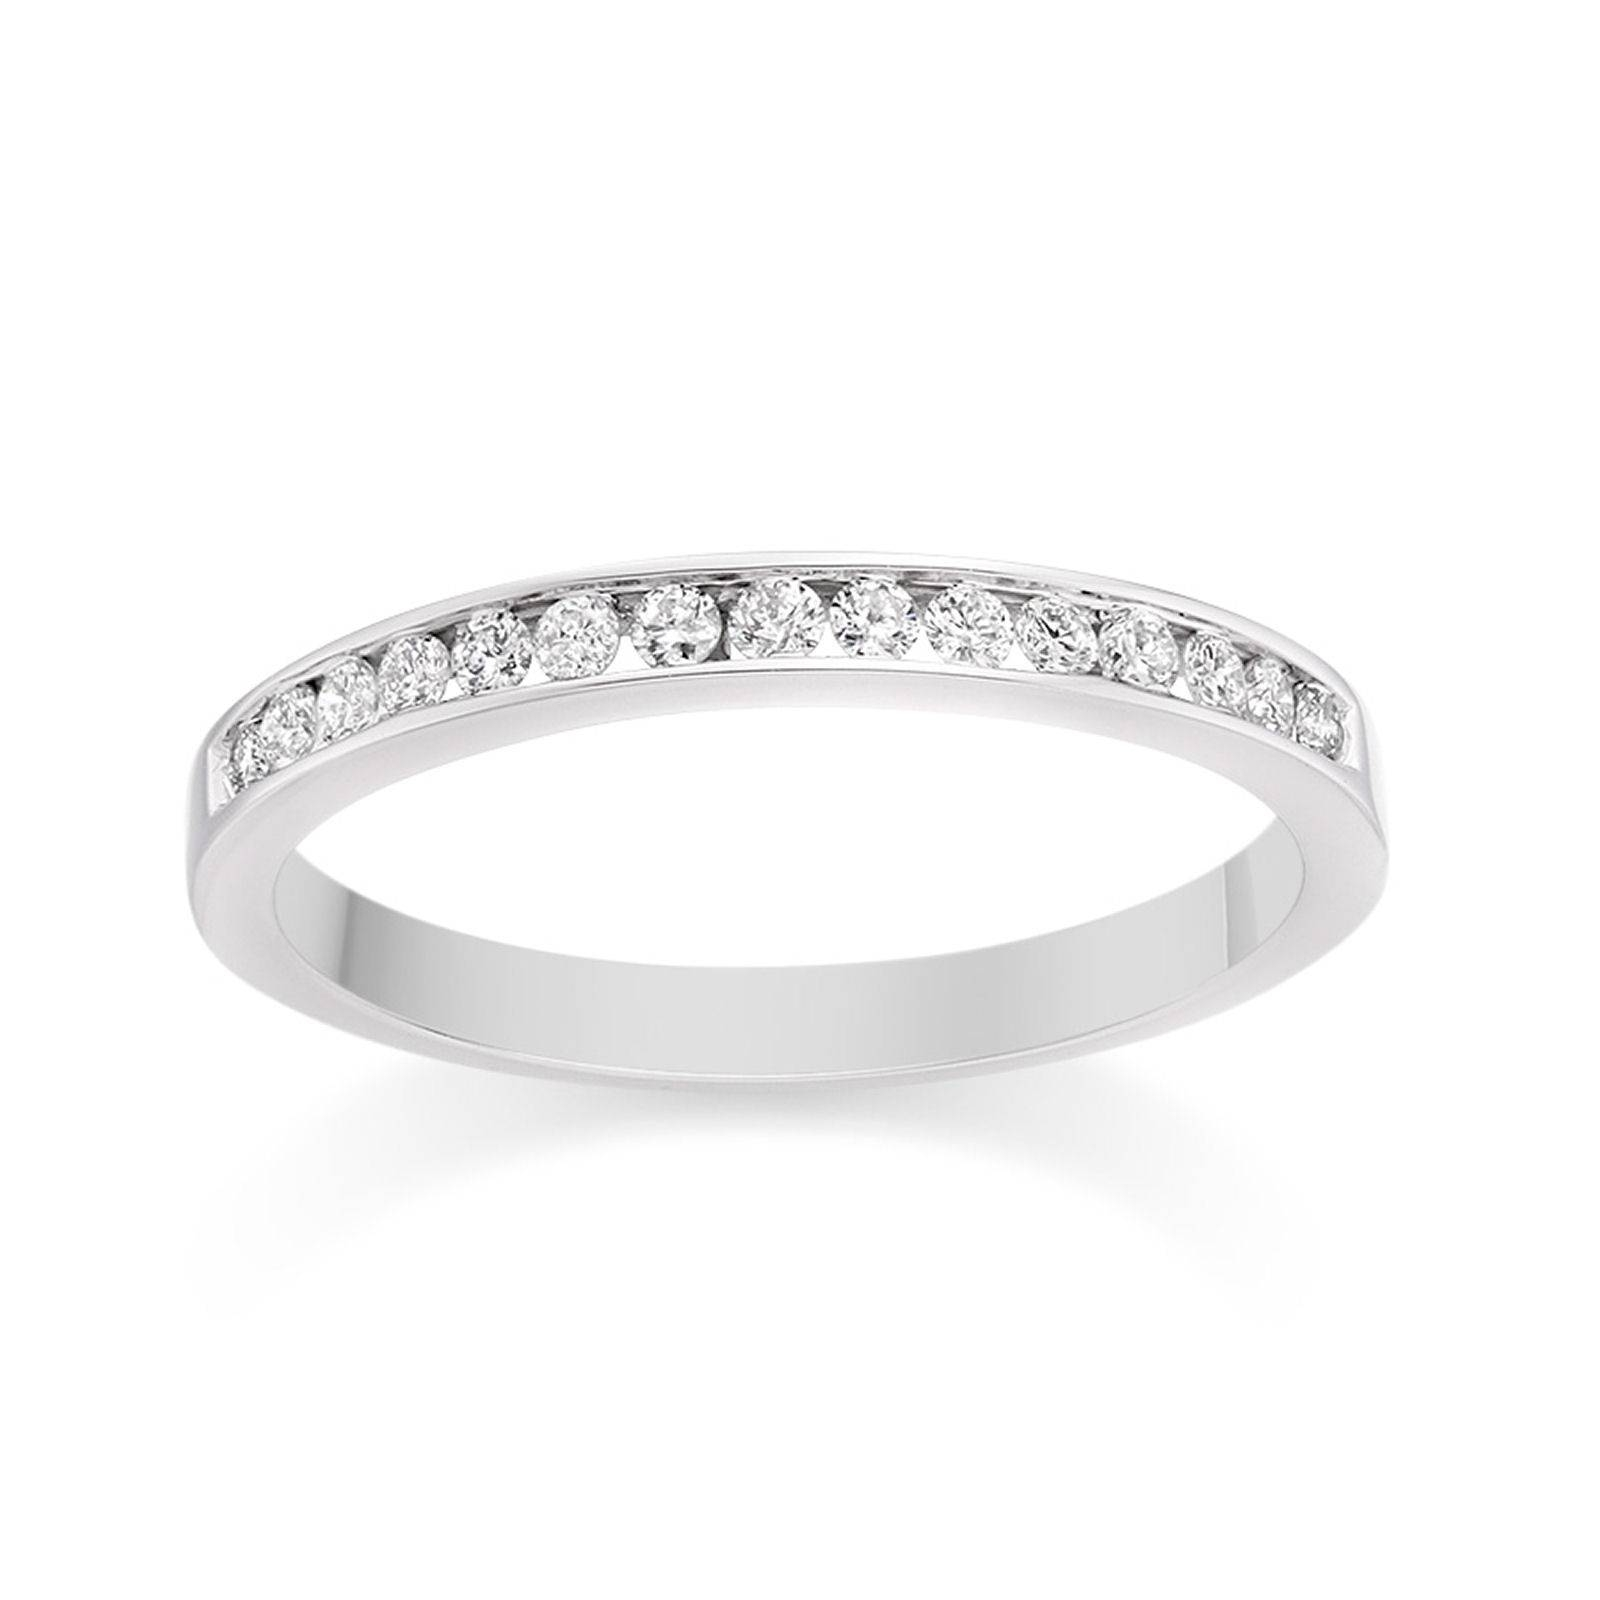 Channel Set Diamond Wedding Ring In Platinum Wedding Dress From Pertaining To Most Recently Released Platinum And Diamond Wedding Bands (Gallery 9 of 15)